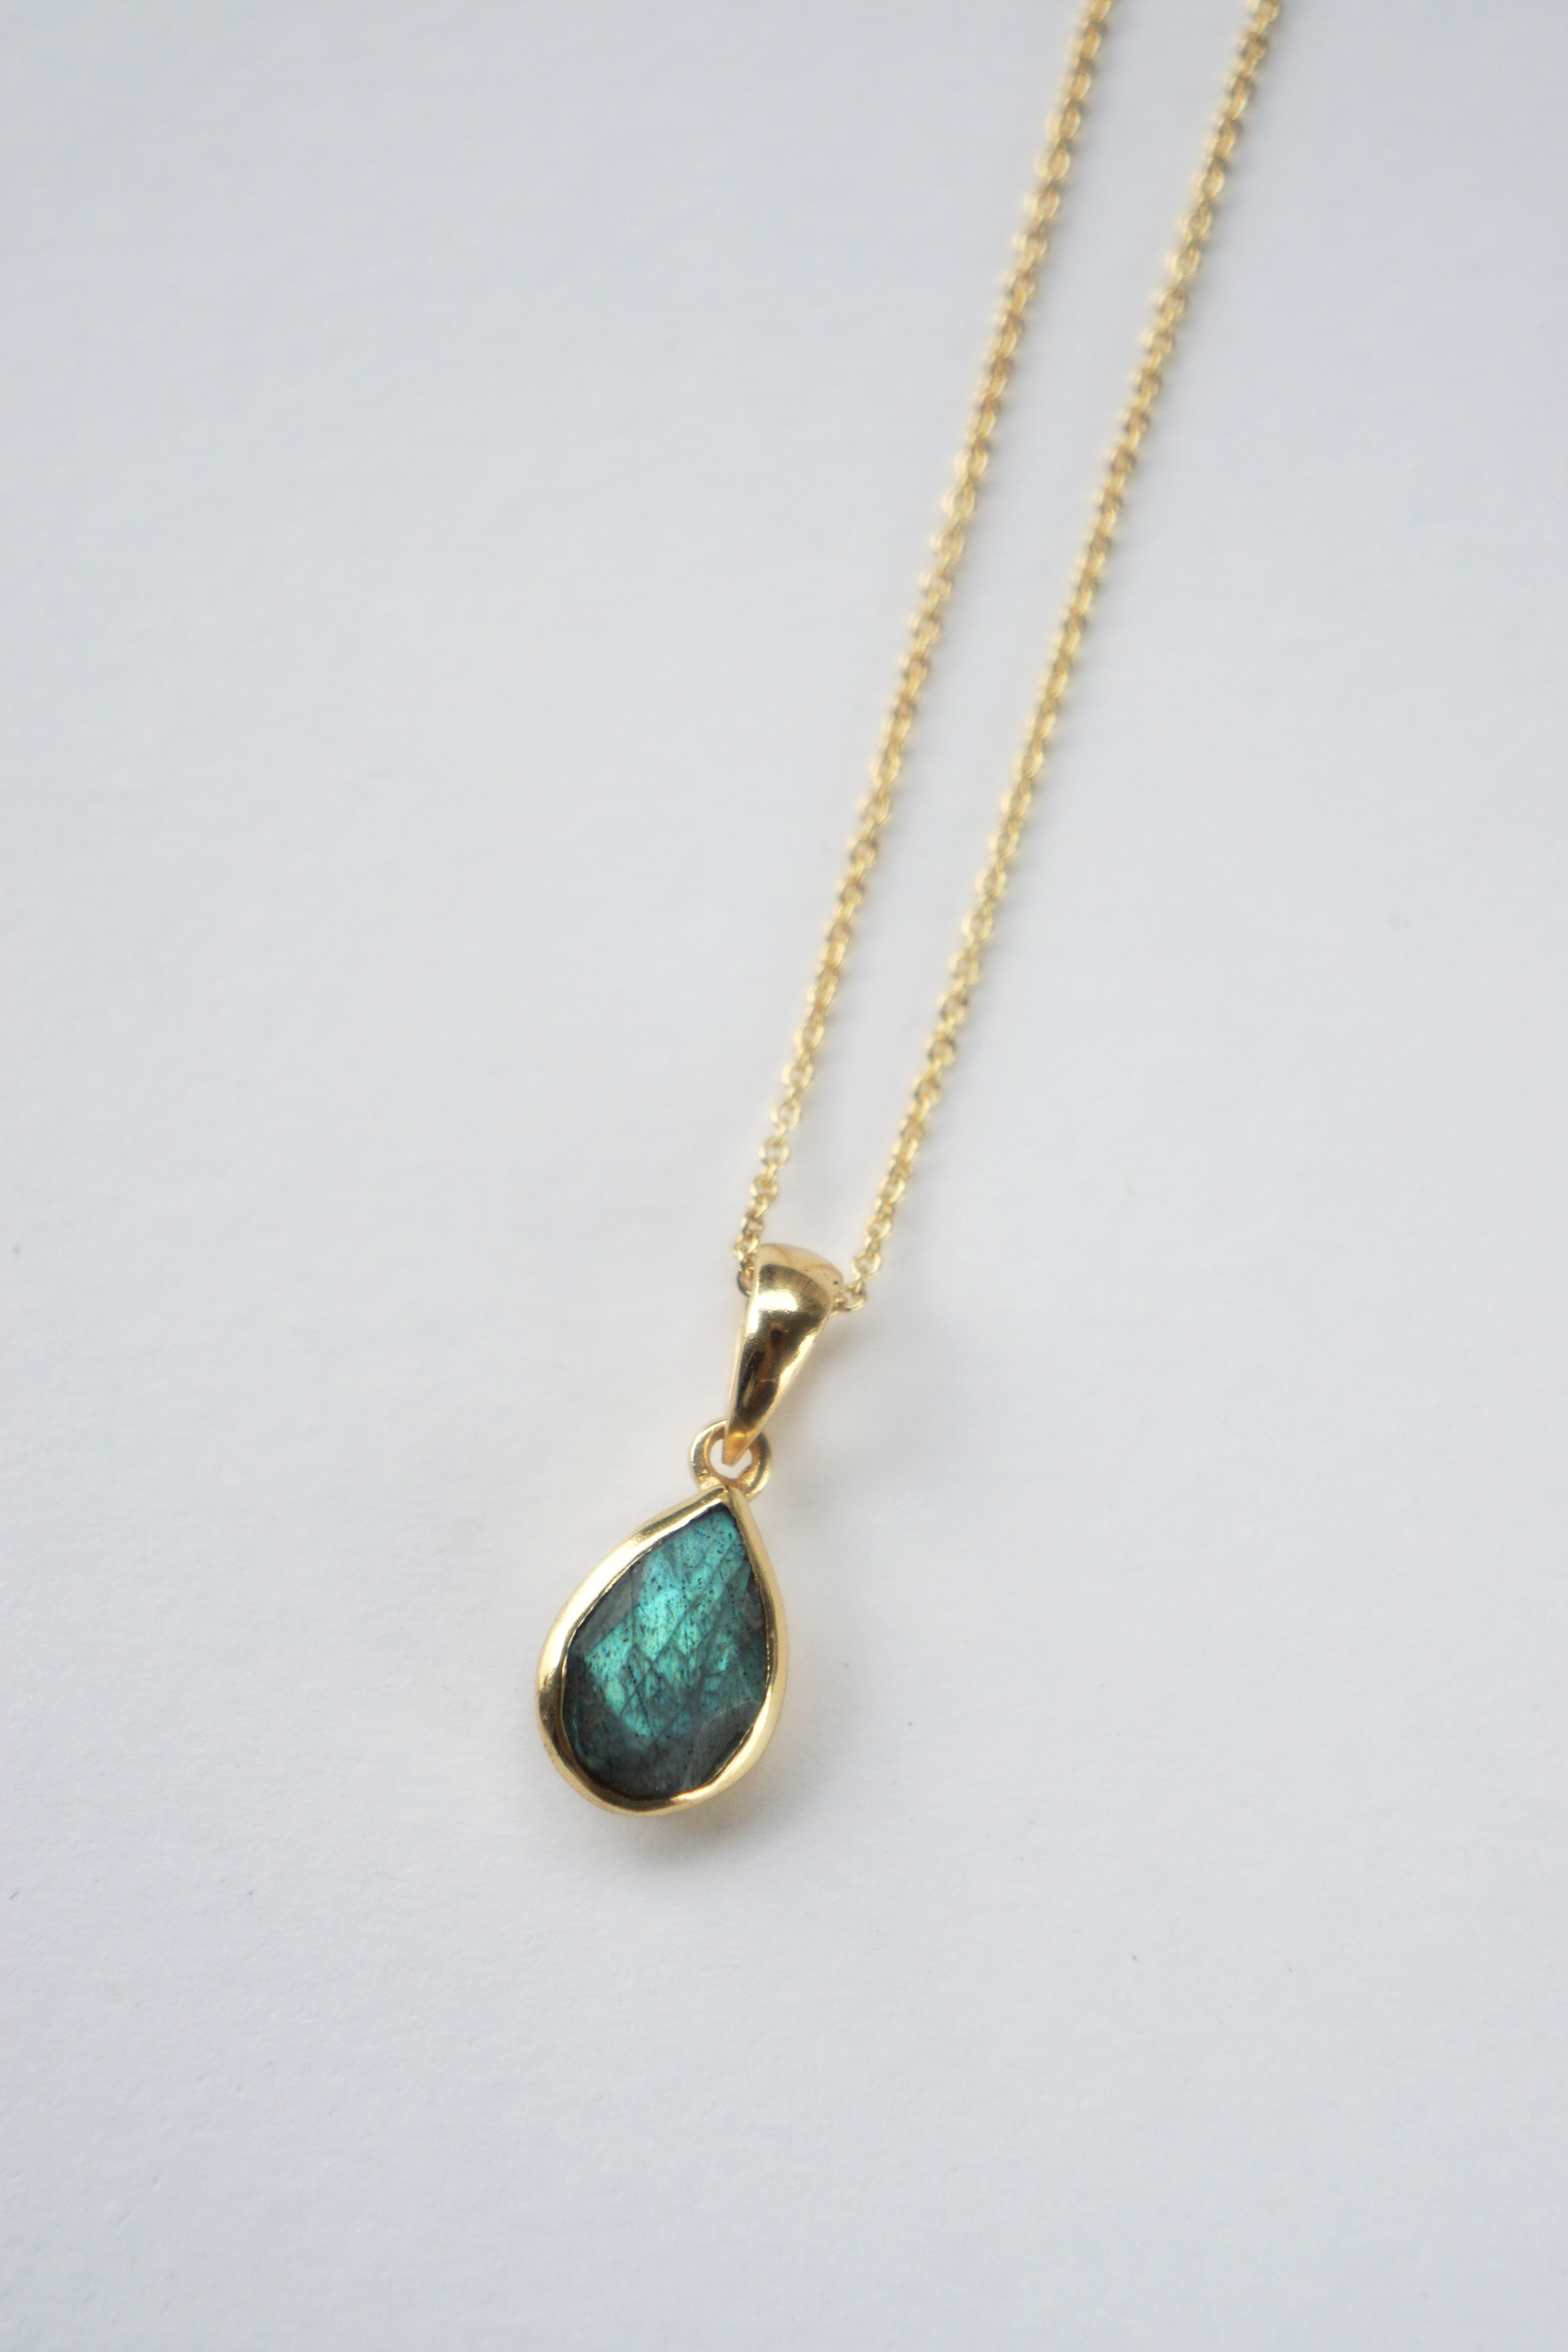 Teardrop Necklace - Labradorite